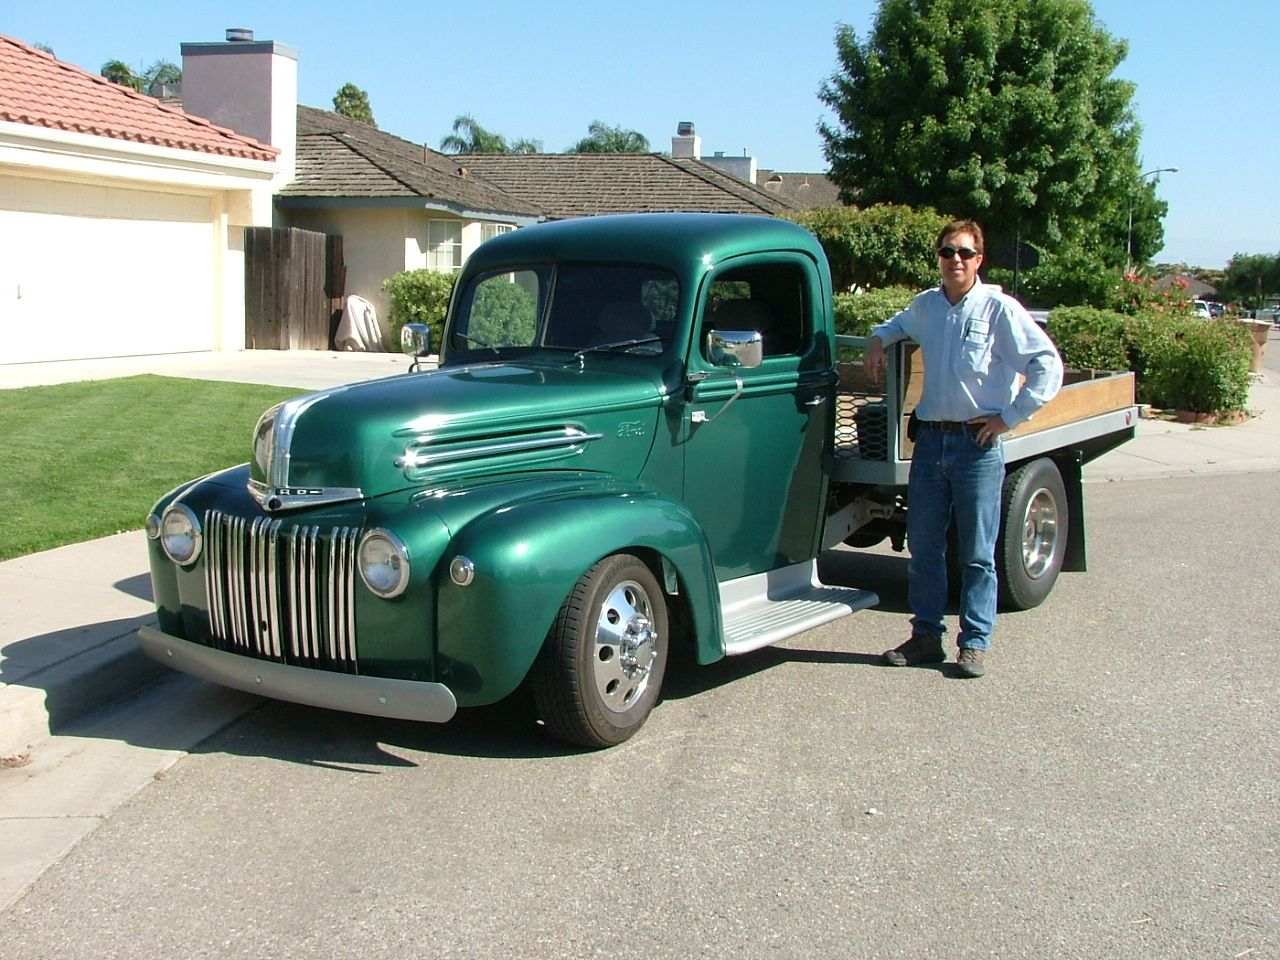 1947 ford flatbed truck 383 chevy automatic power disc brakes and air conditioning